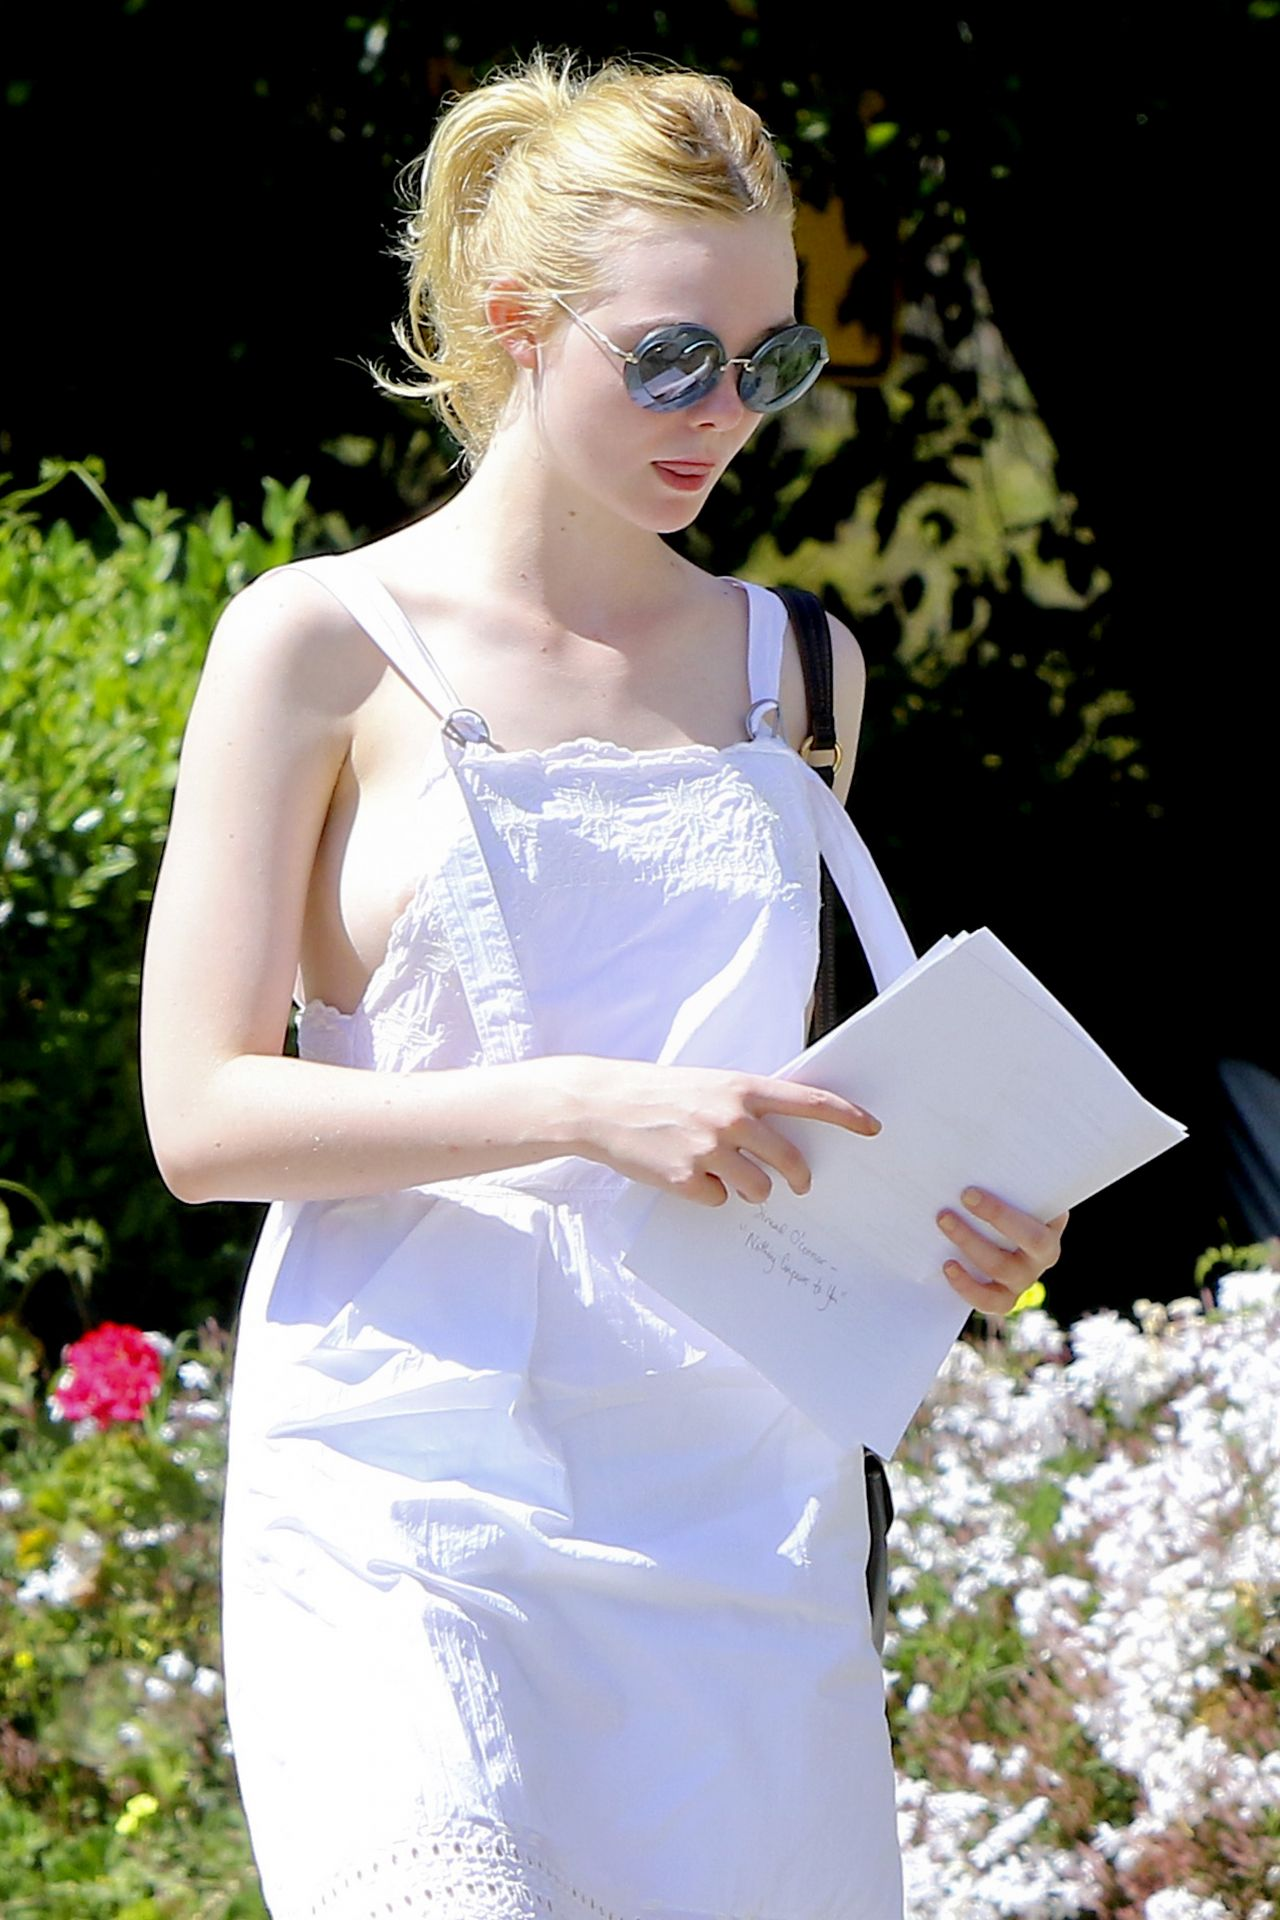 15 elle fanning - photo #18